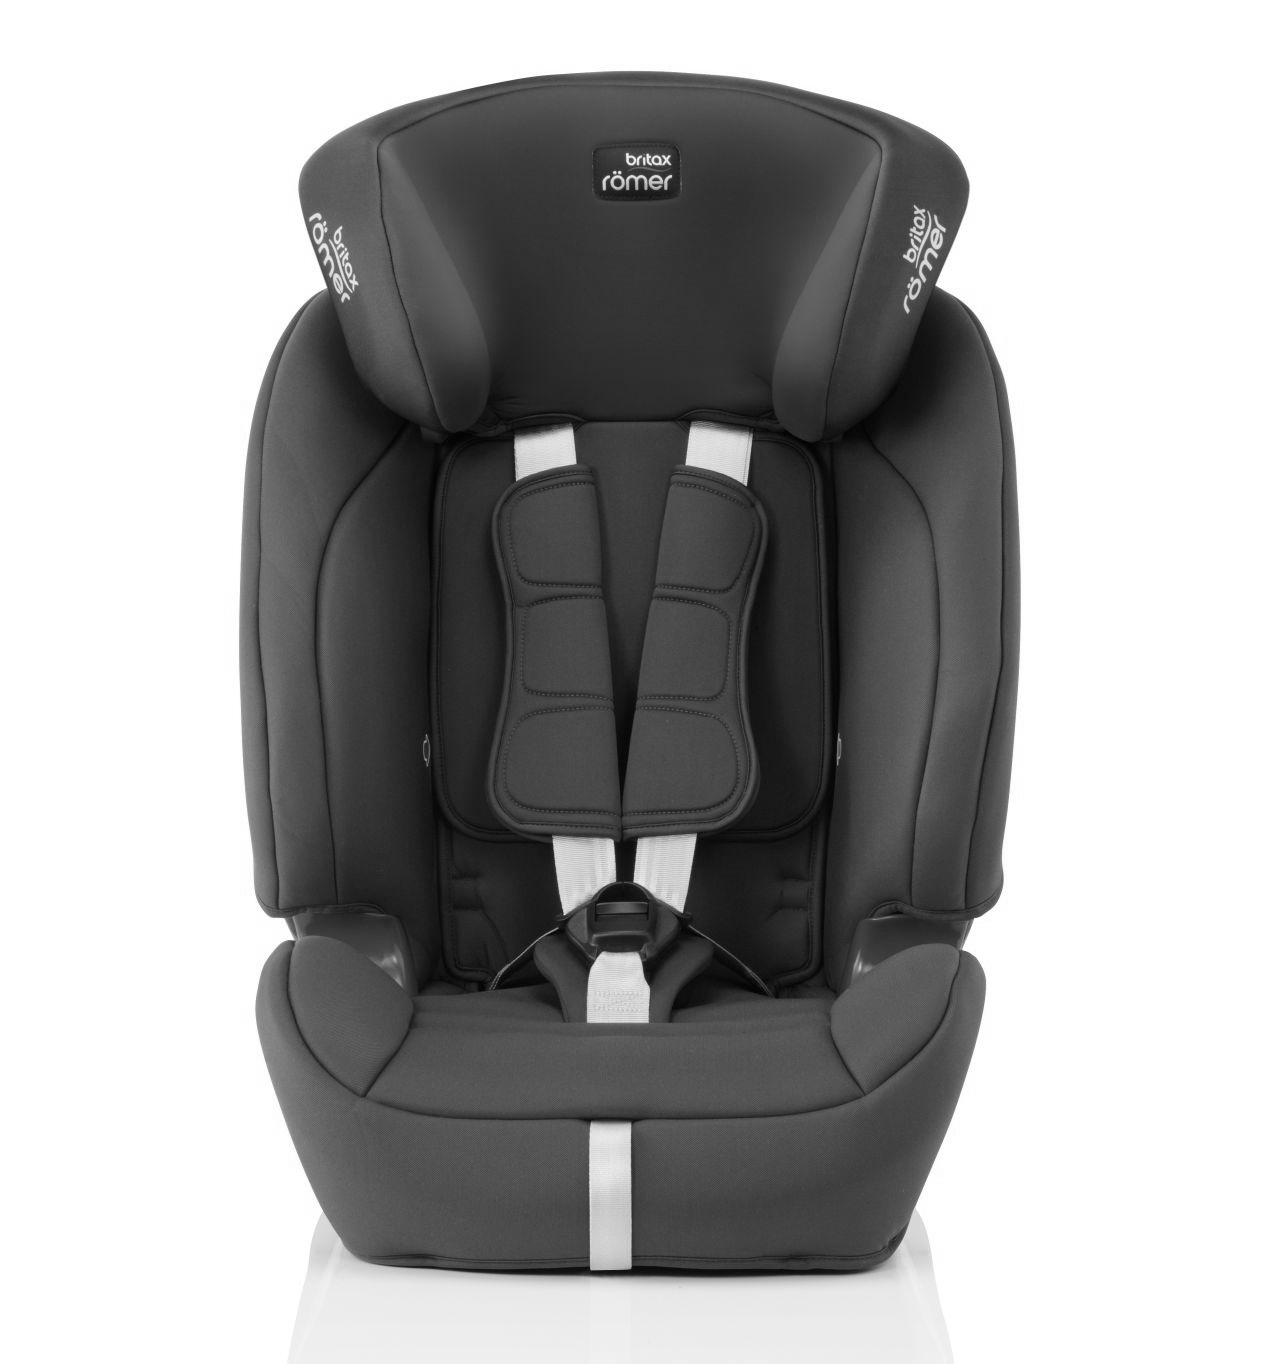 britax r mer kindersitz evolva 1 2 3 sl sict isofix online kaufen bei kidsroom kindersitze. Black Bedroom Furniture Sets. Home Design Ideas